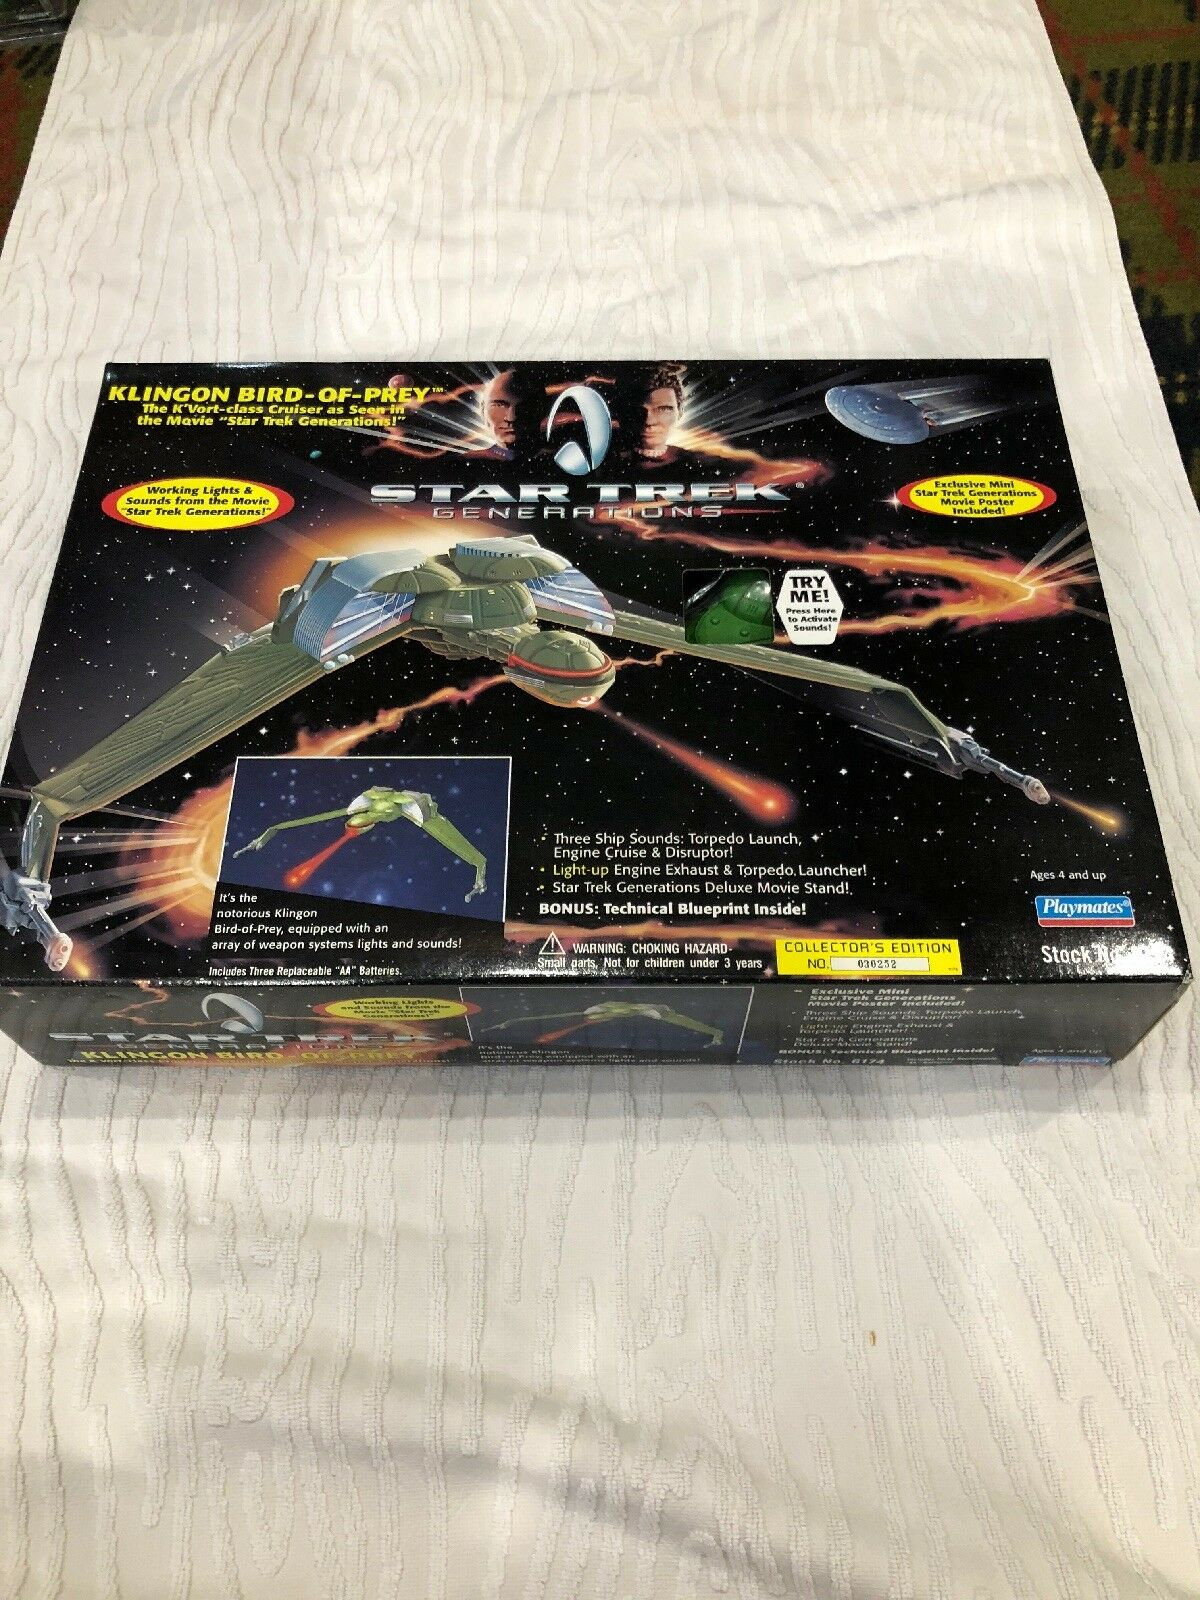 Star trek generations - bird-of-prey 1994 c9.5 mib   6174